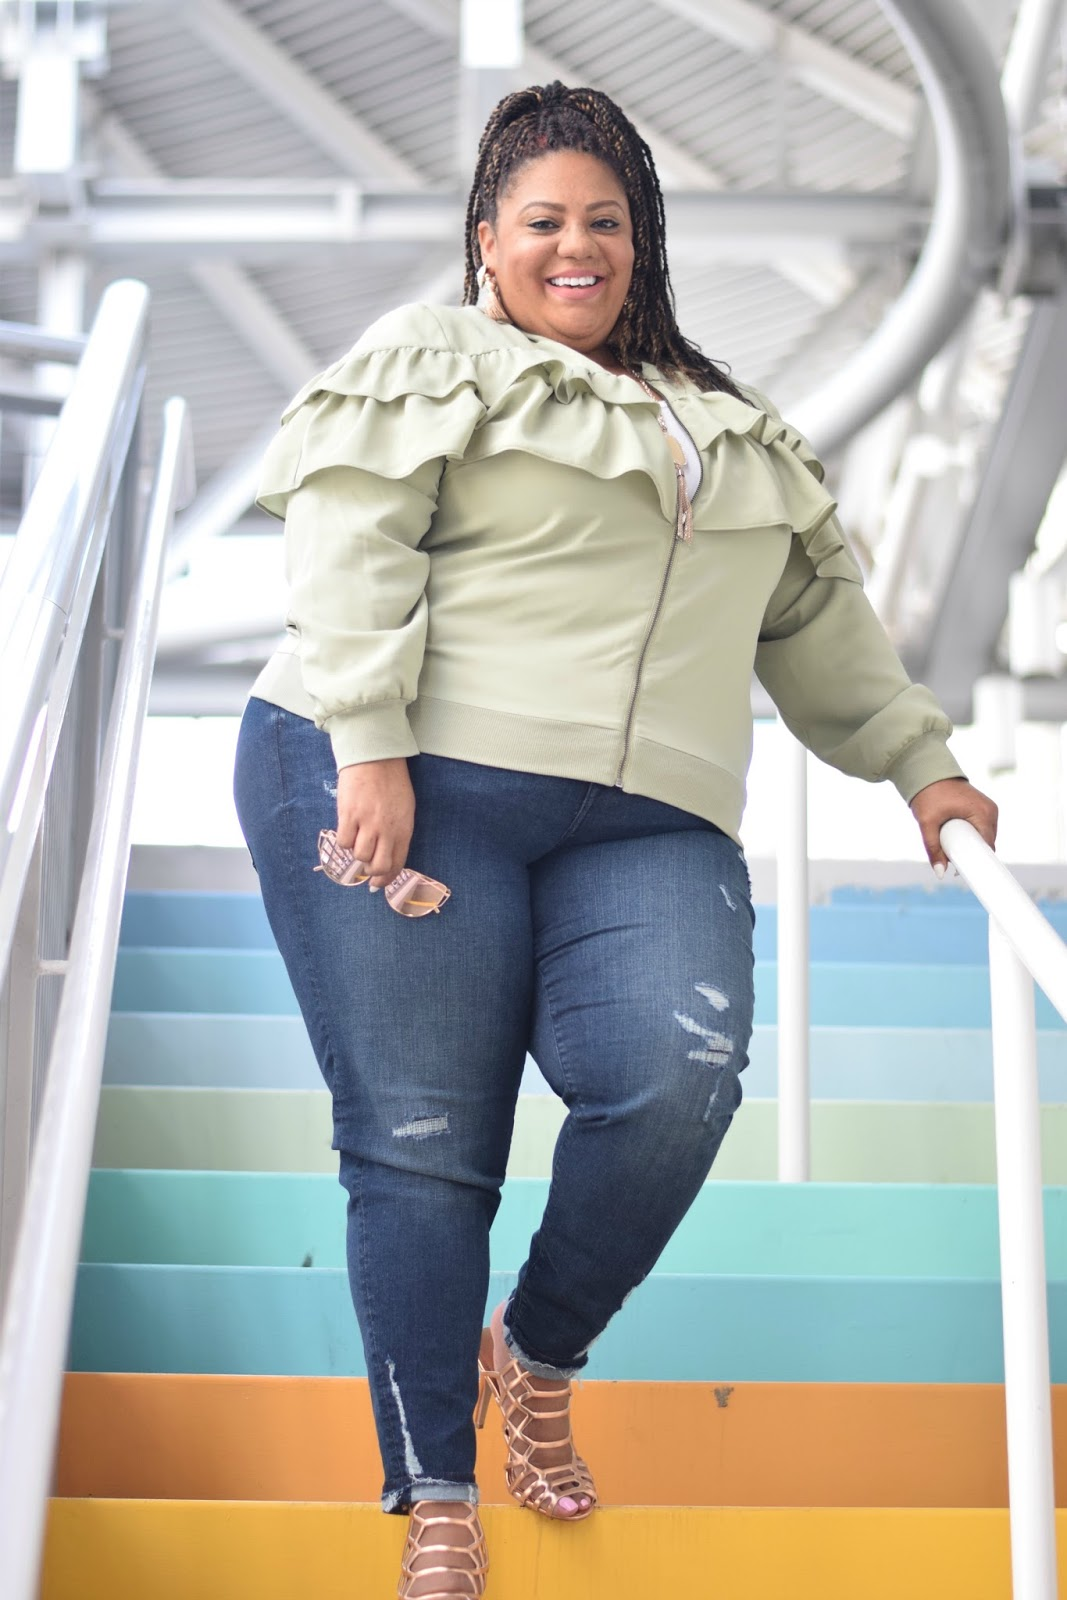 29ce16c940 This post is not an ad or sponsorship by Lane Bryant. All opinions and  reviews are my own. I just truly believe in standing with a brand and  collection that ...